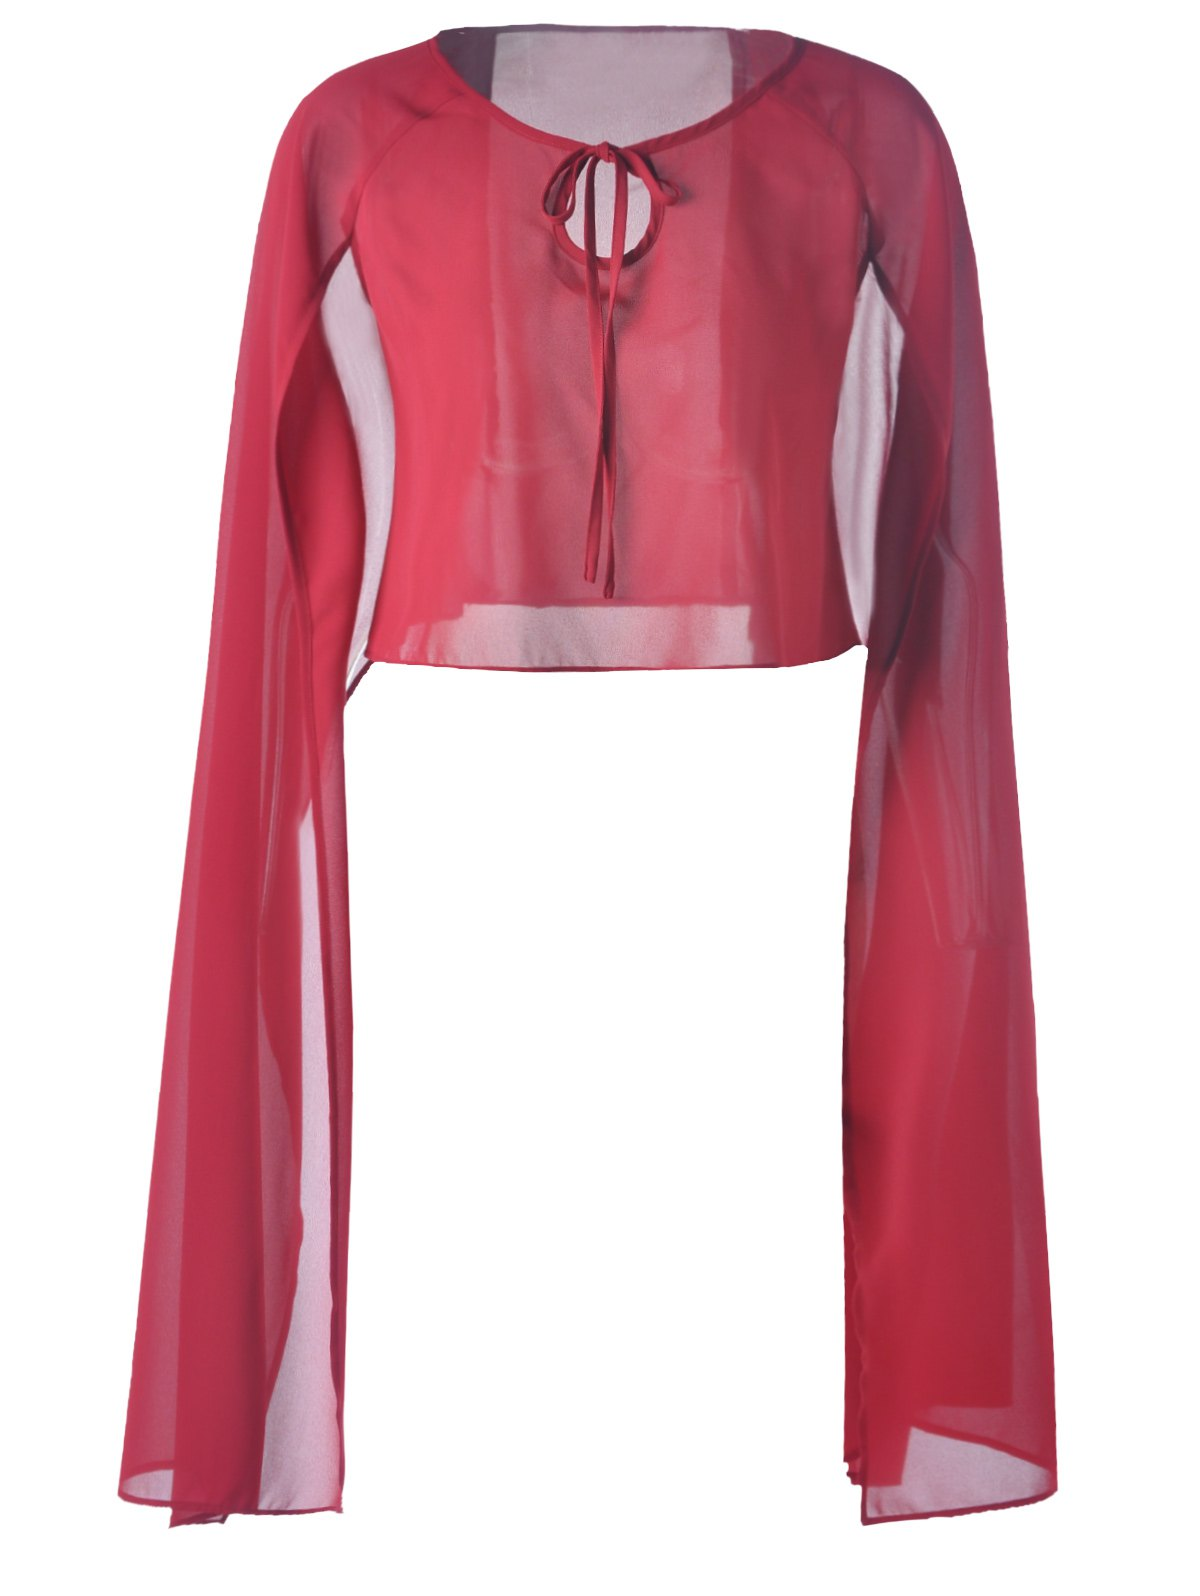 Fashionable Pure Color Chiffon Top For Women - DEEP RED S